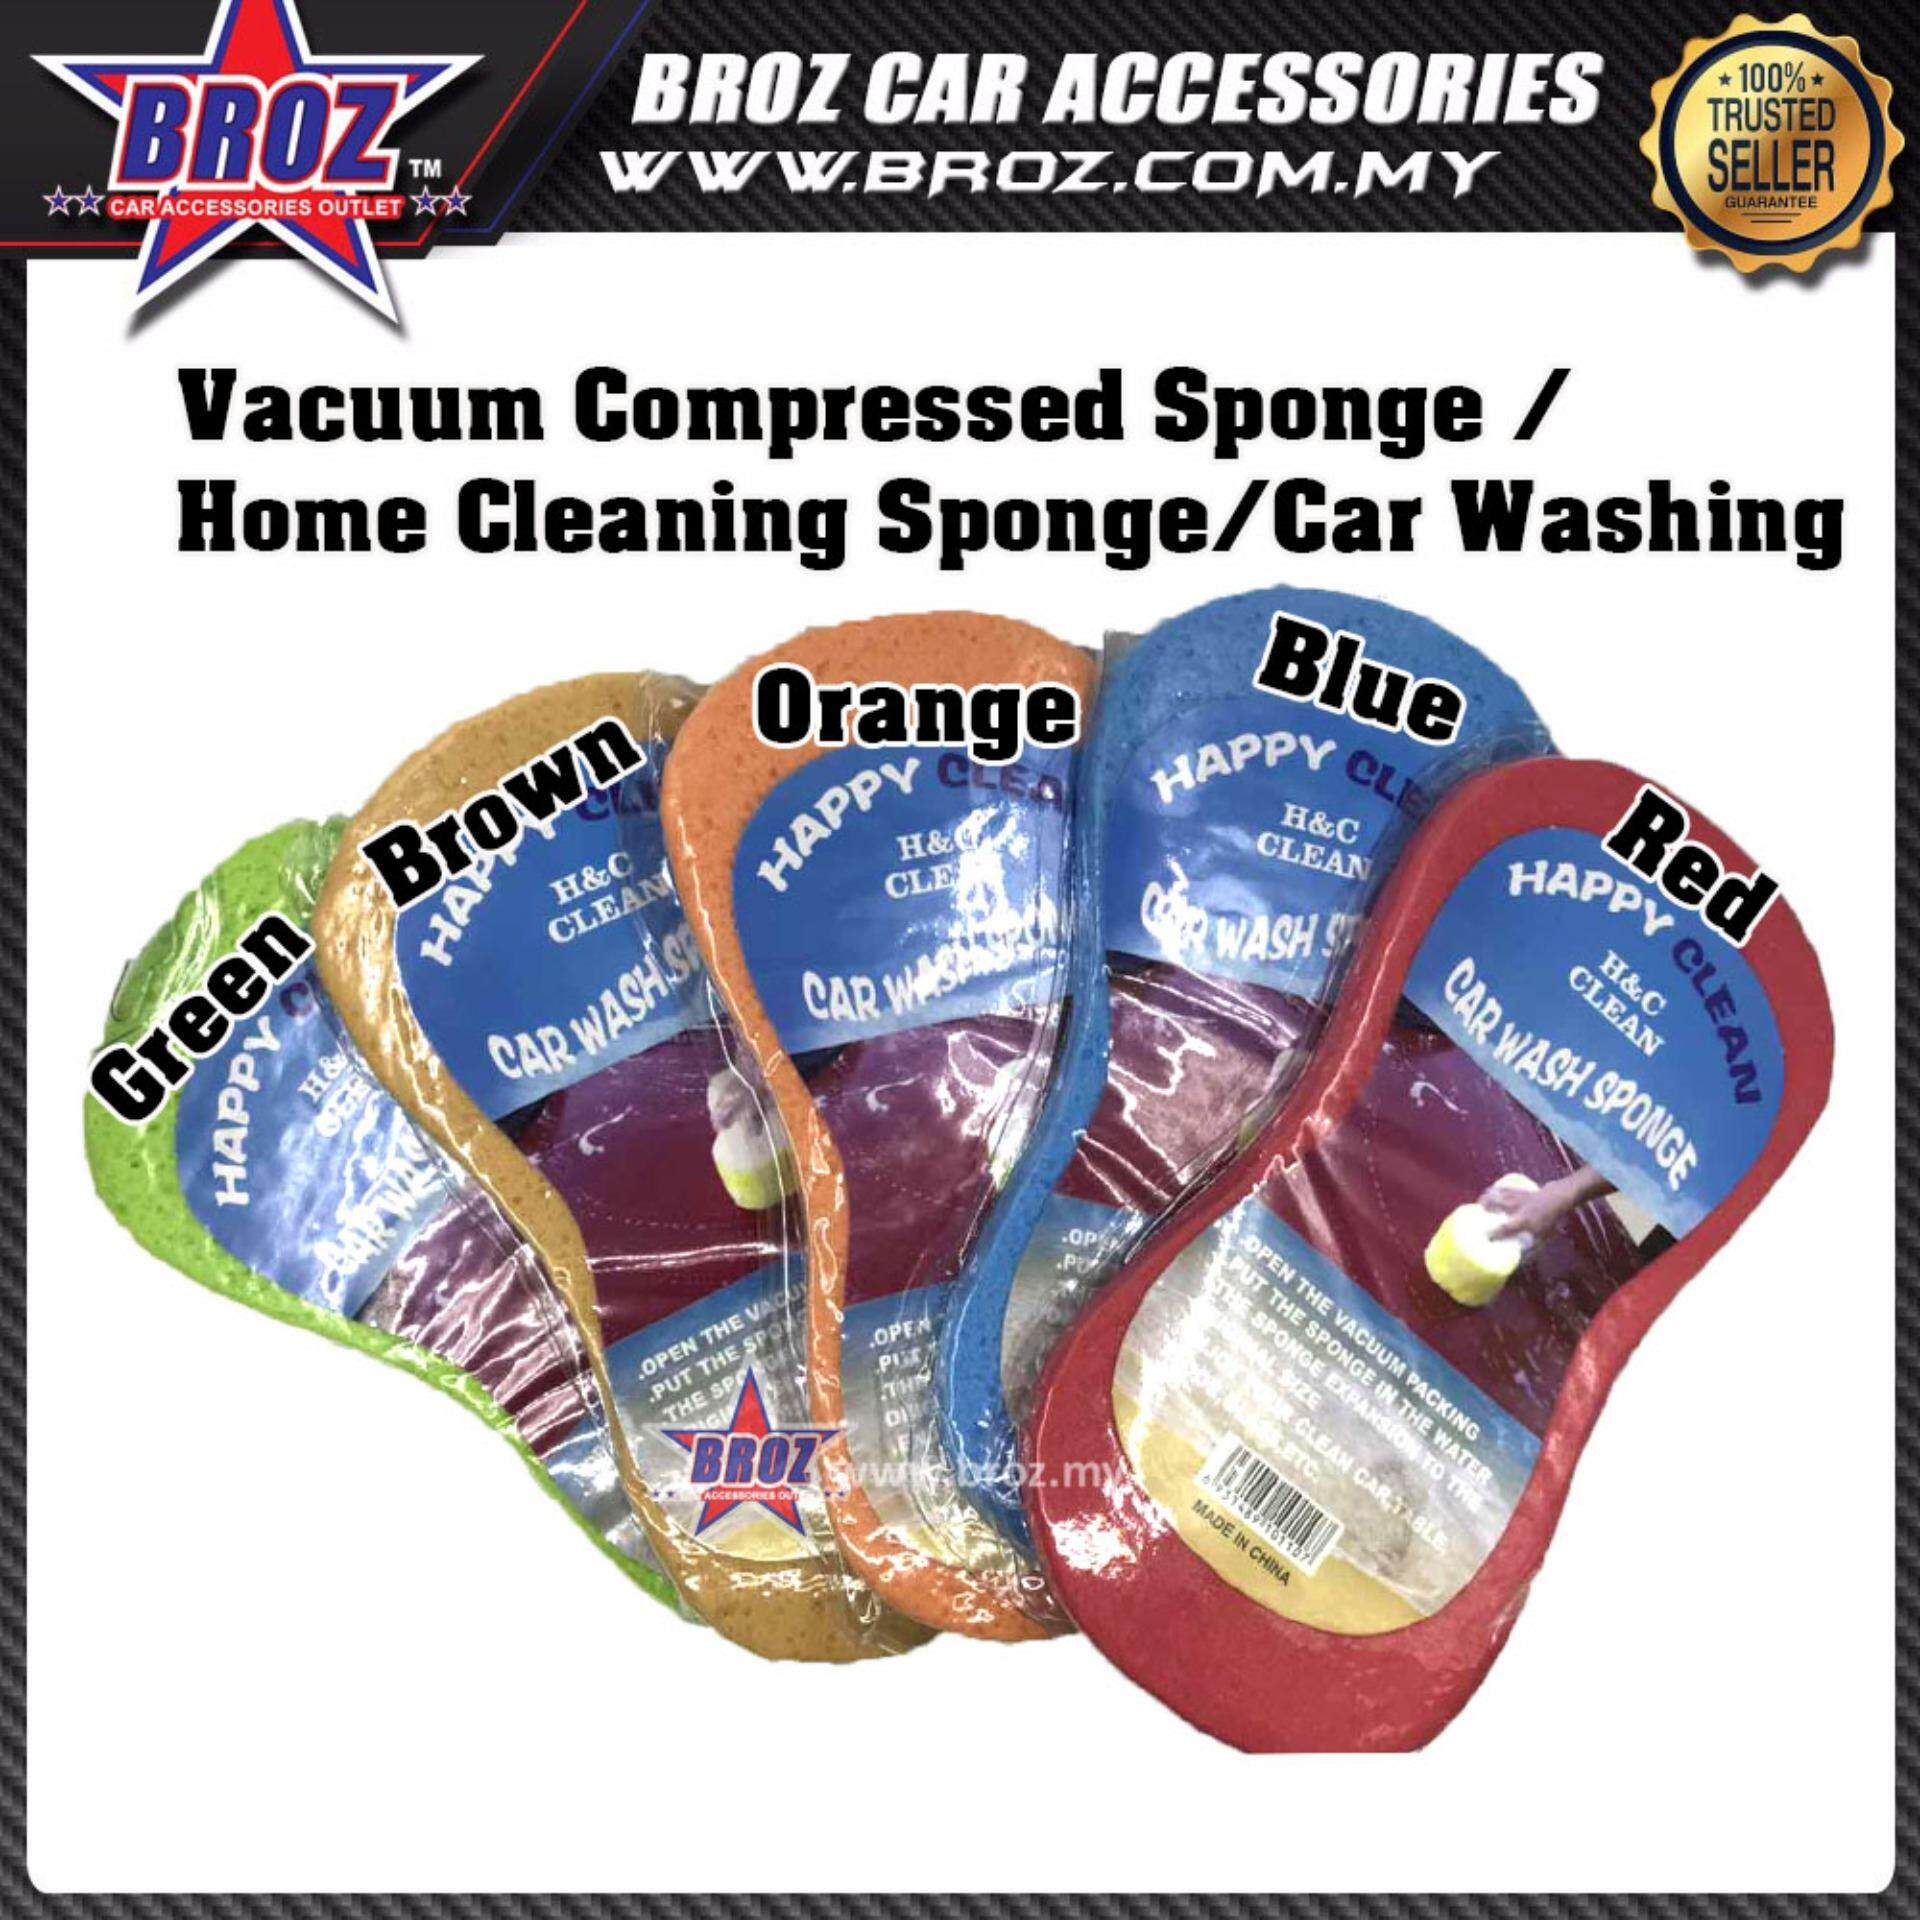 3 x Vaccum Compressed Sponge/Home Cleaning Sponge/Car Washing (Green)